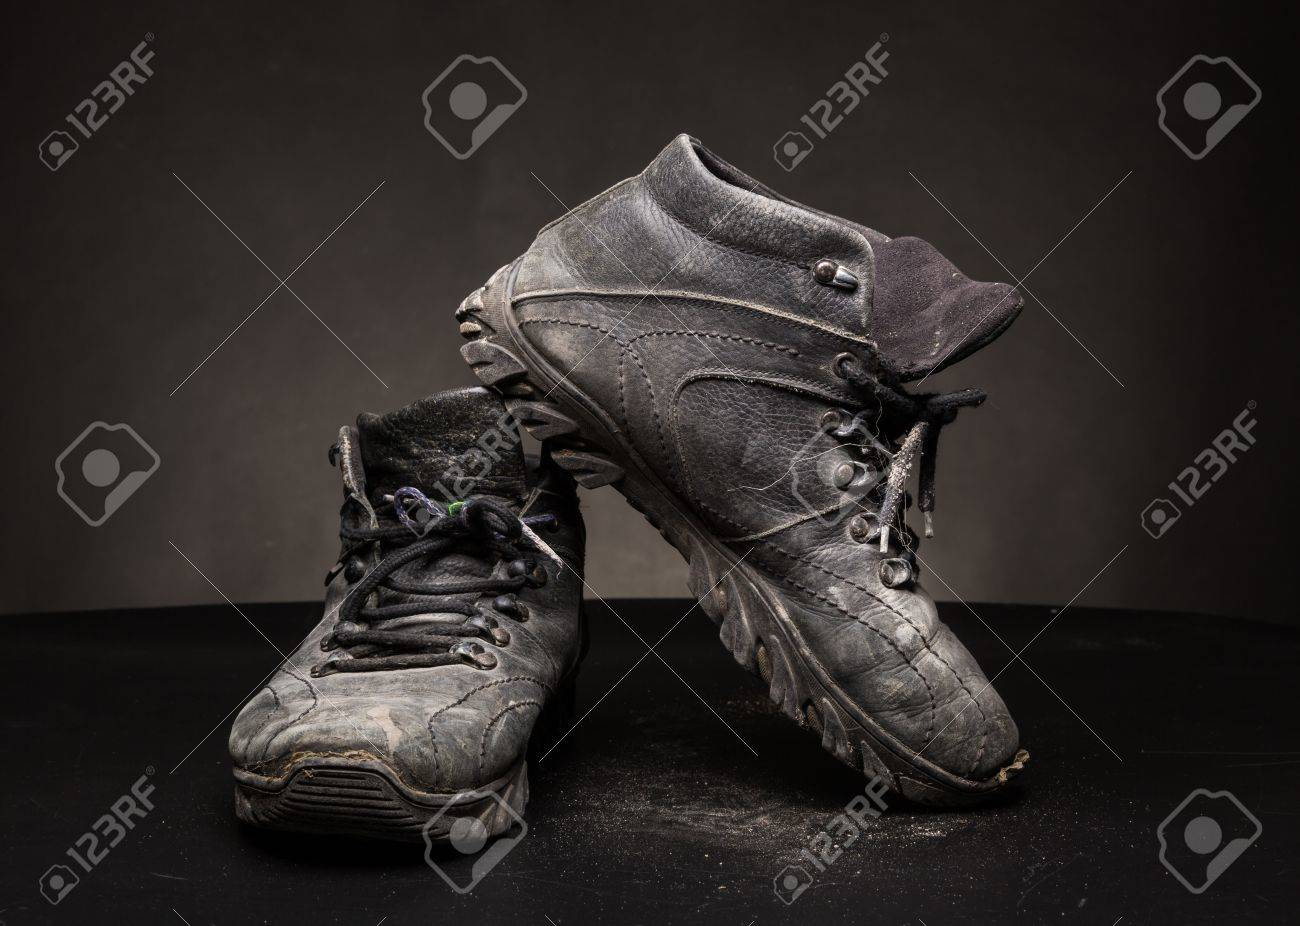 A pair of old black worn out shoes on the floor